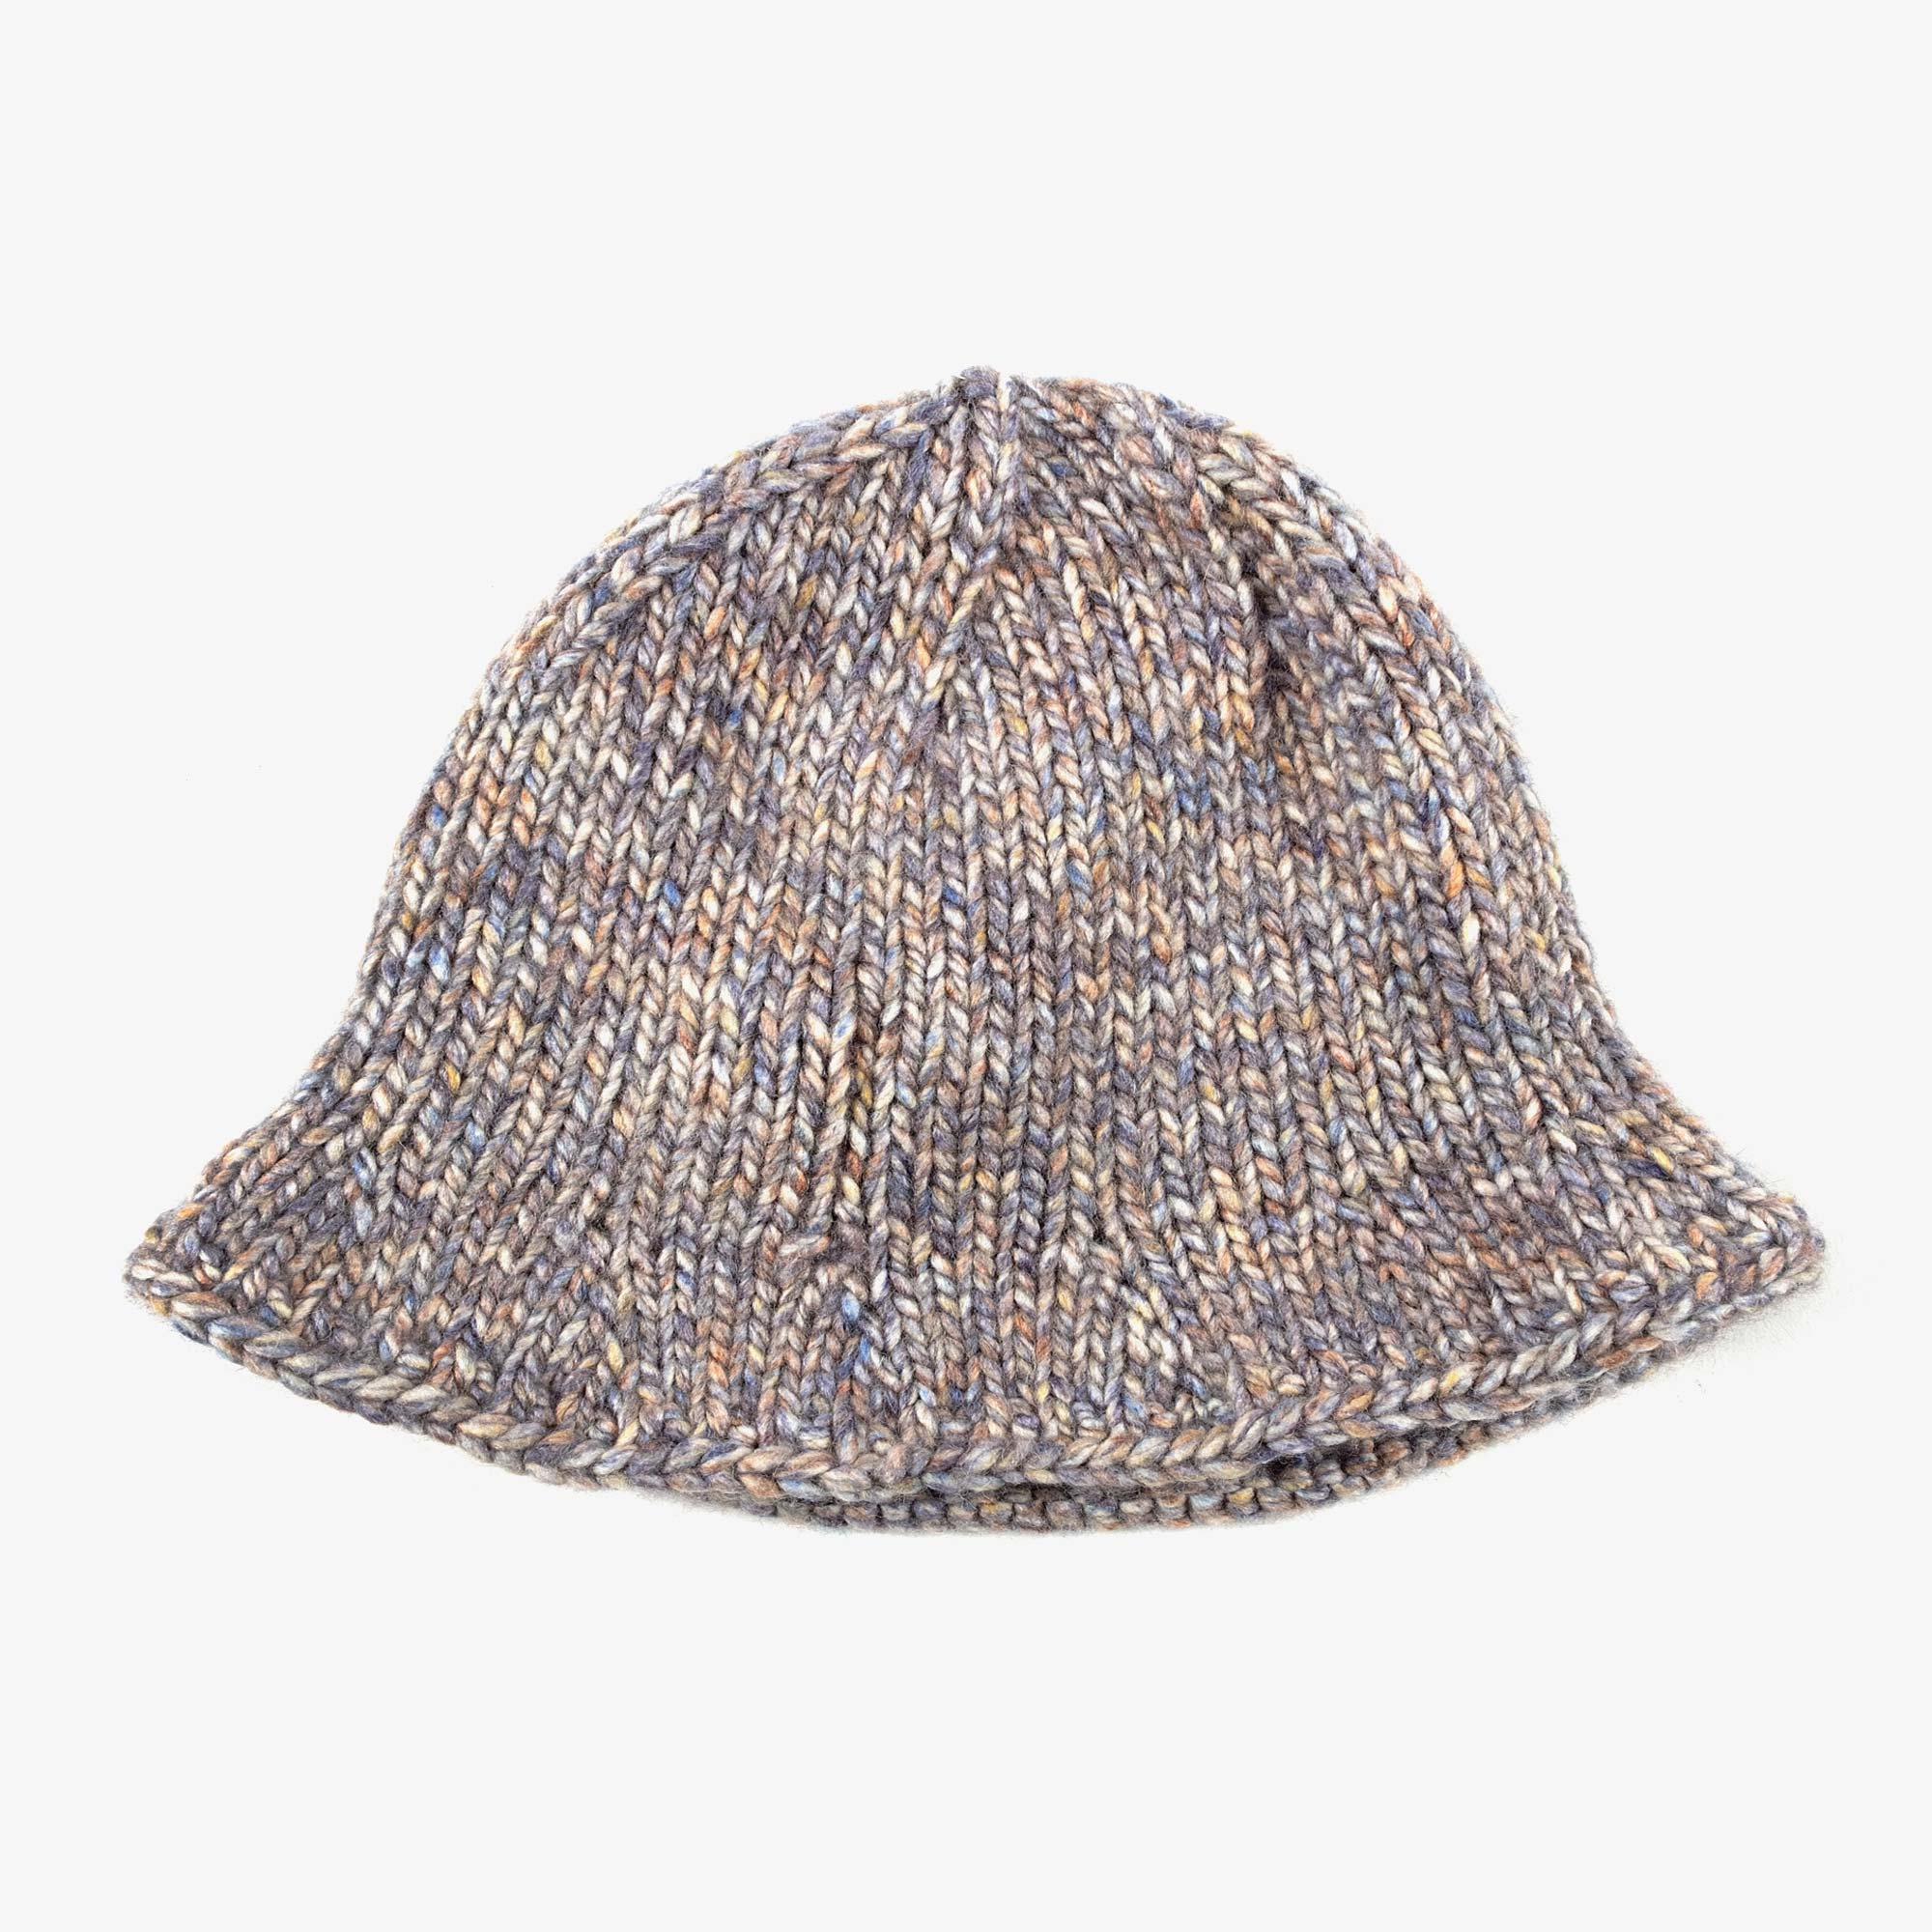 About The Tower t'1361 Knitted Bucket Hat - Grey 1